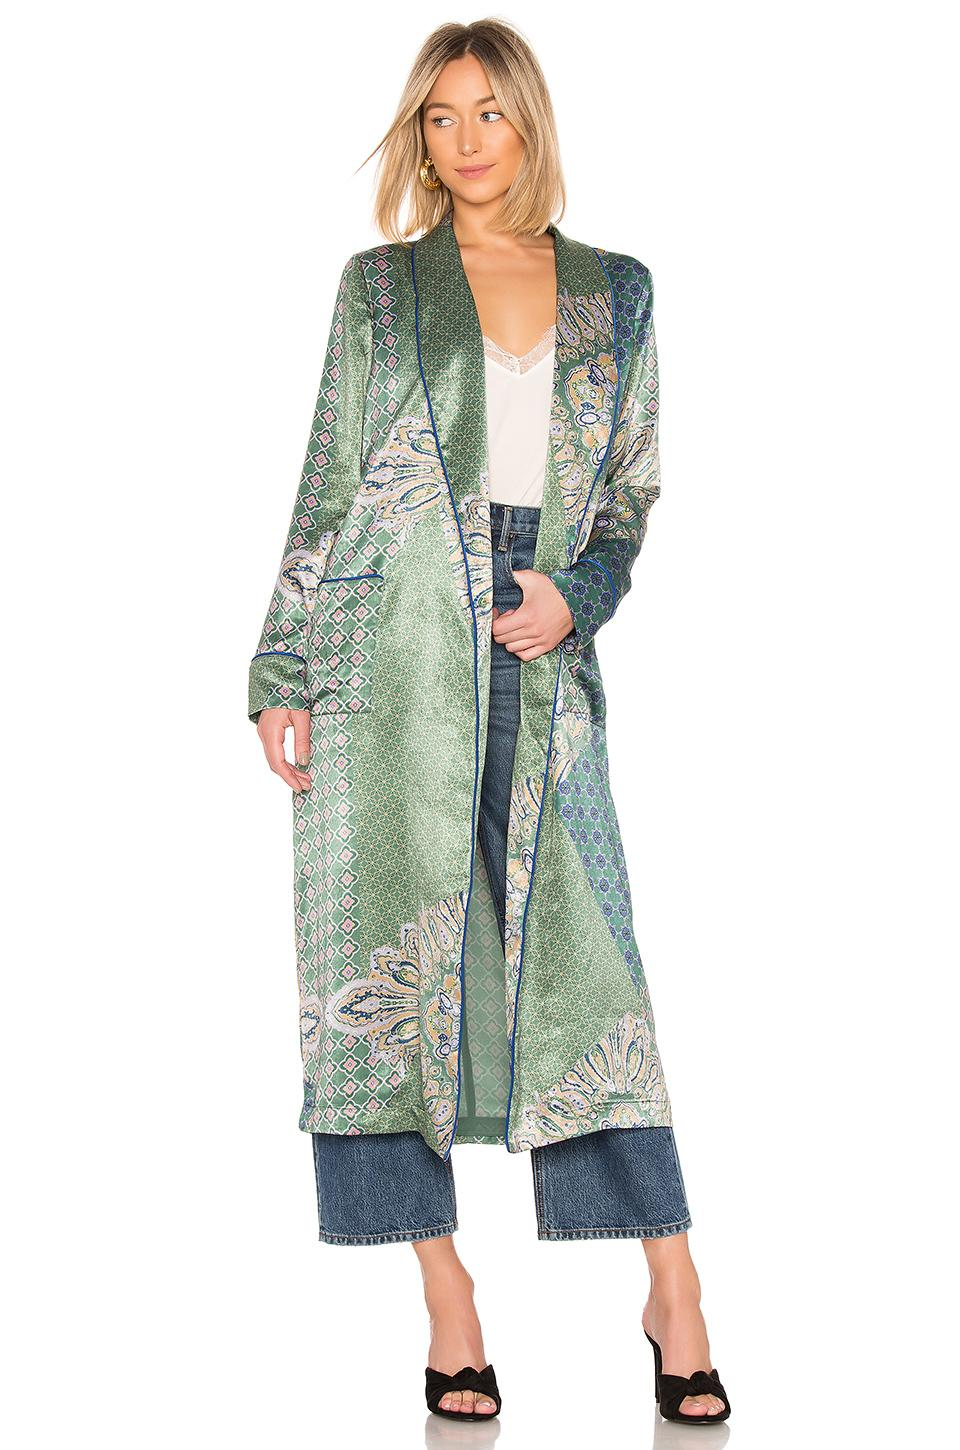 House Of Harlow 1960 X Revolve Edwin Robe In Moss Green Patchwork